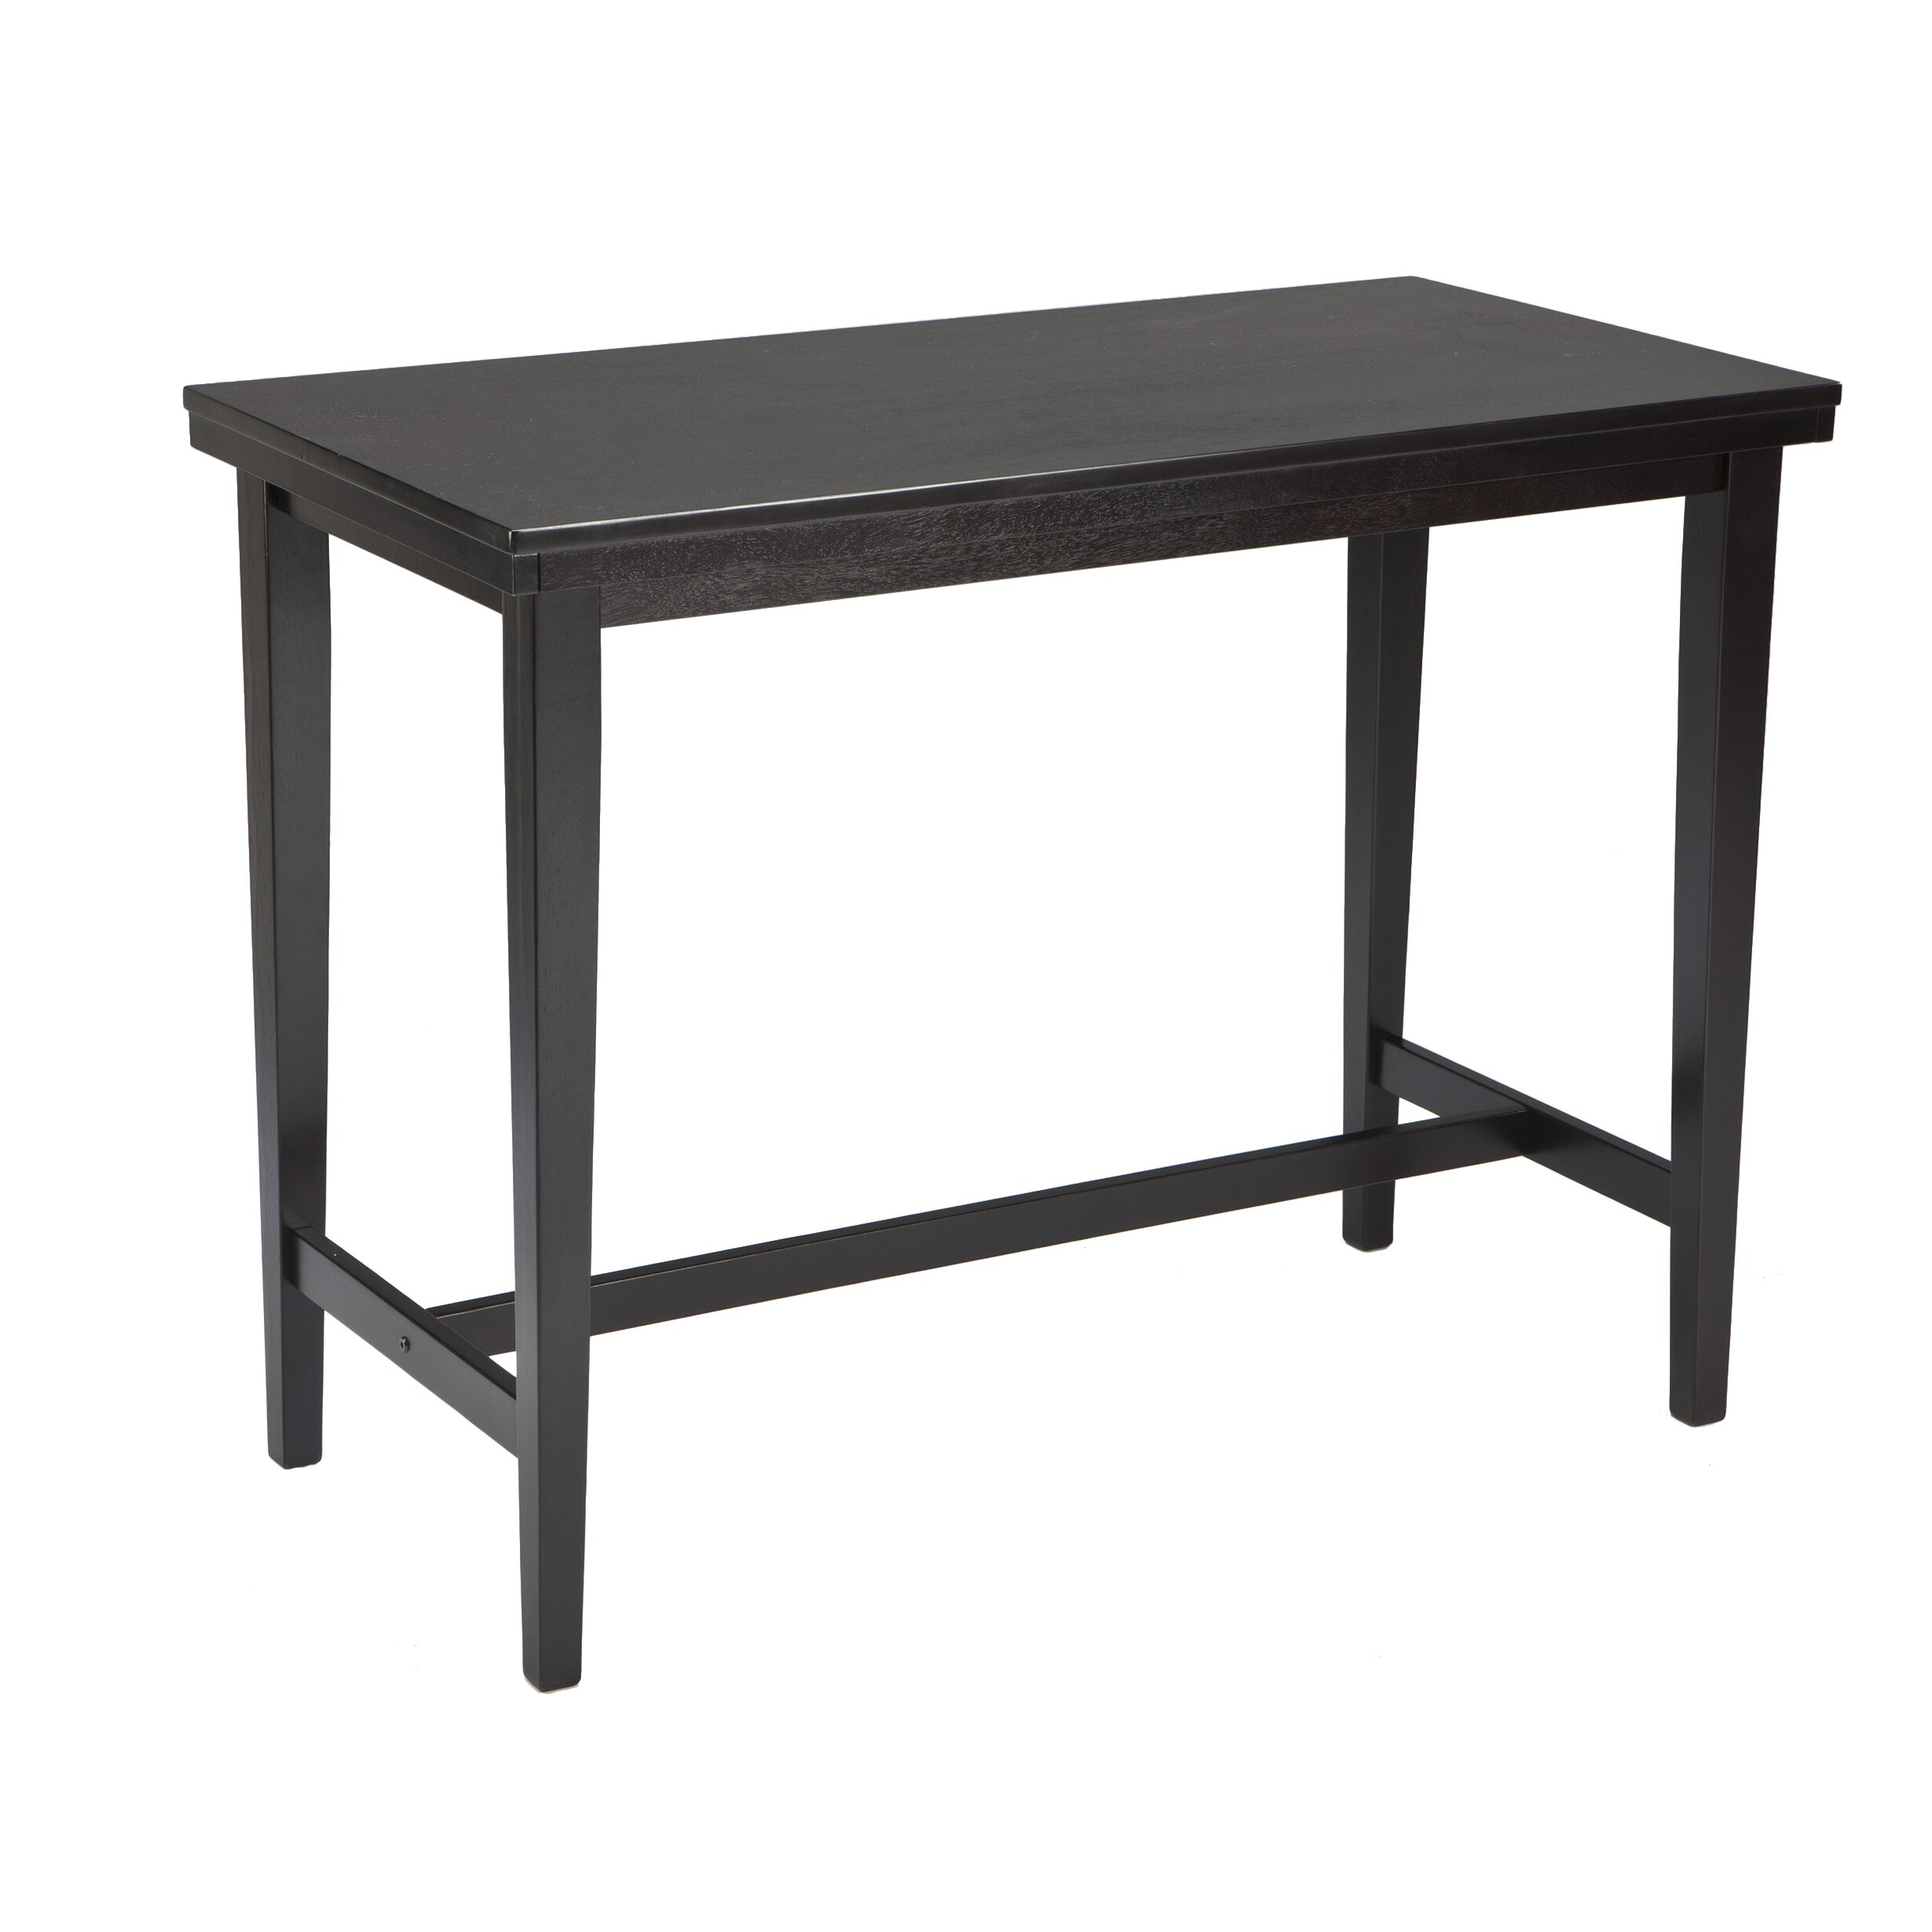 Signature design by ashley kimonte counter height dining for Counter height dining table